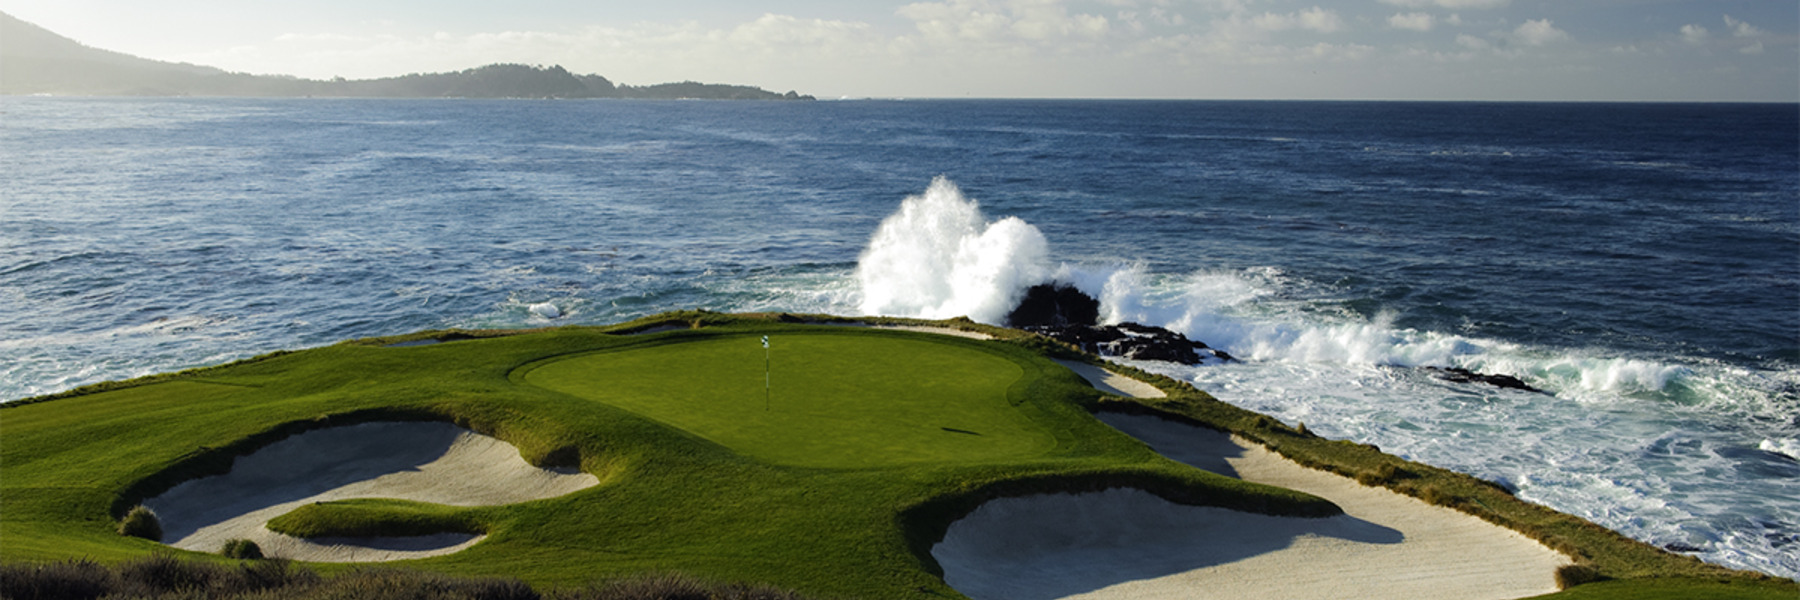 Golf Vacation Package - Pebble Beach Stay and Play - Rates Too Low To Advertise!